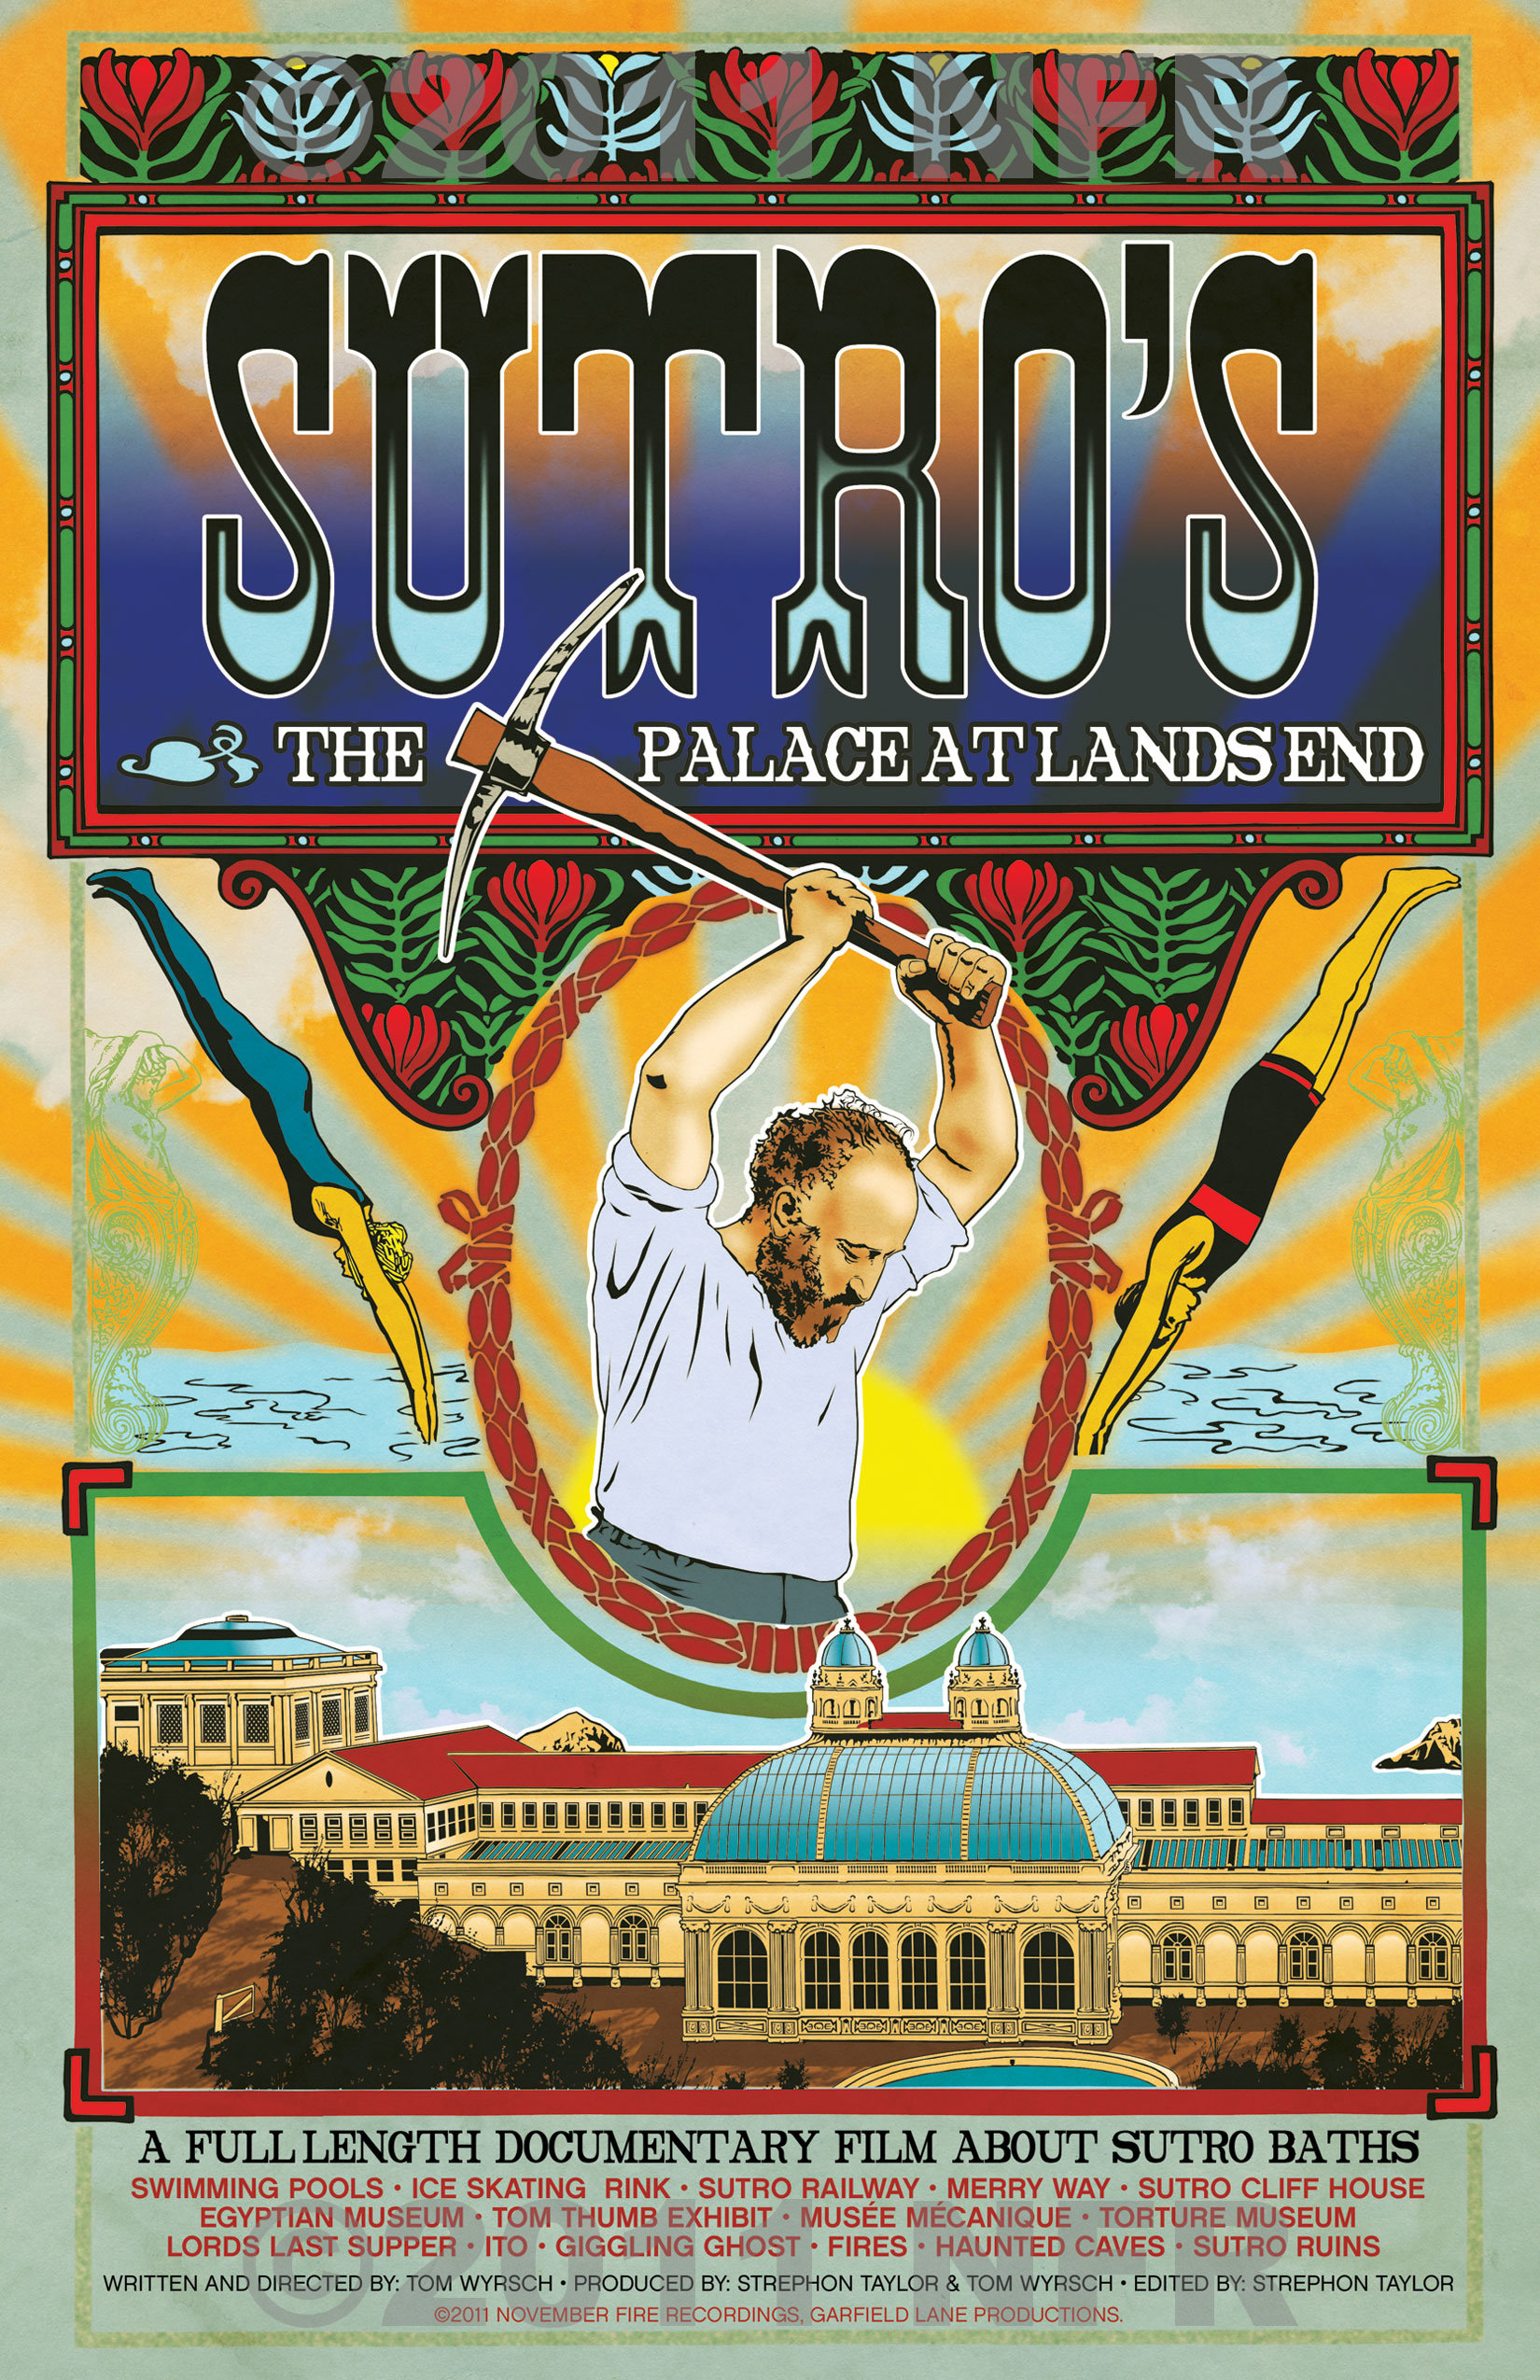 Sutro's: The Palace at Lands End (2011) - IMDb